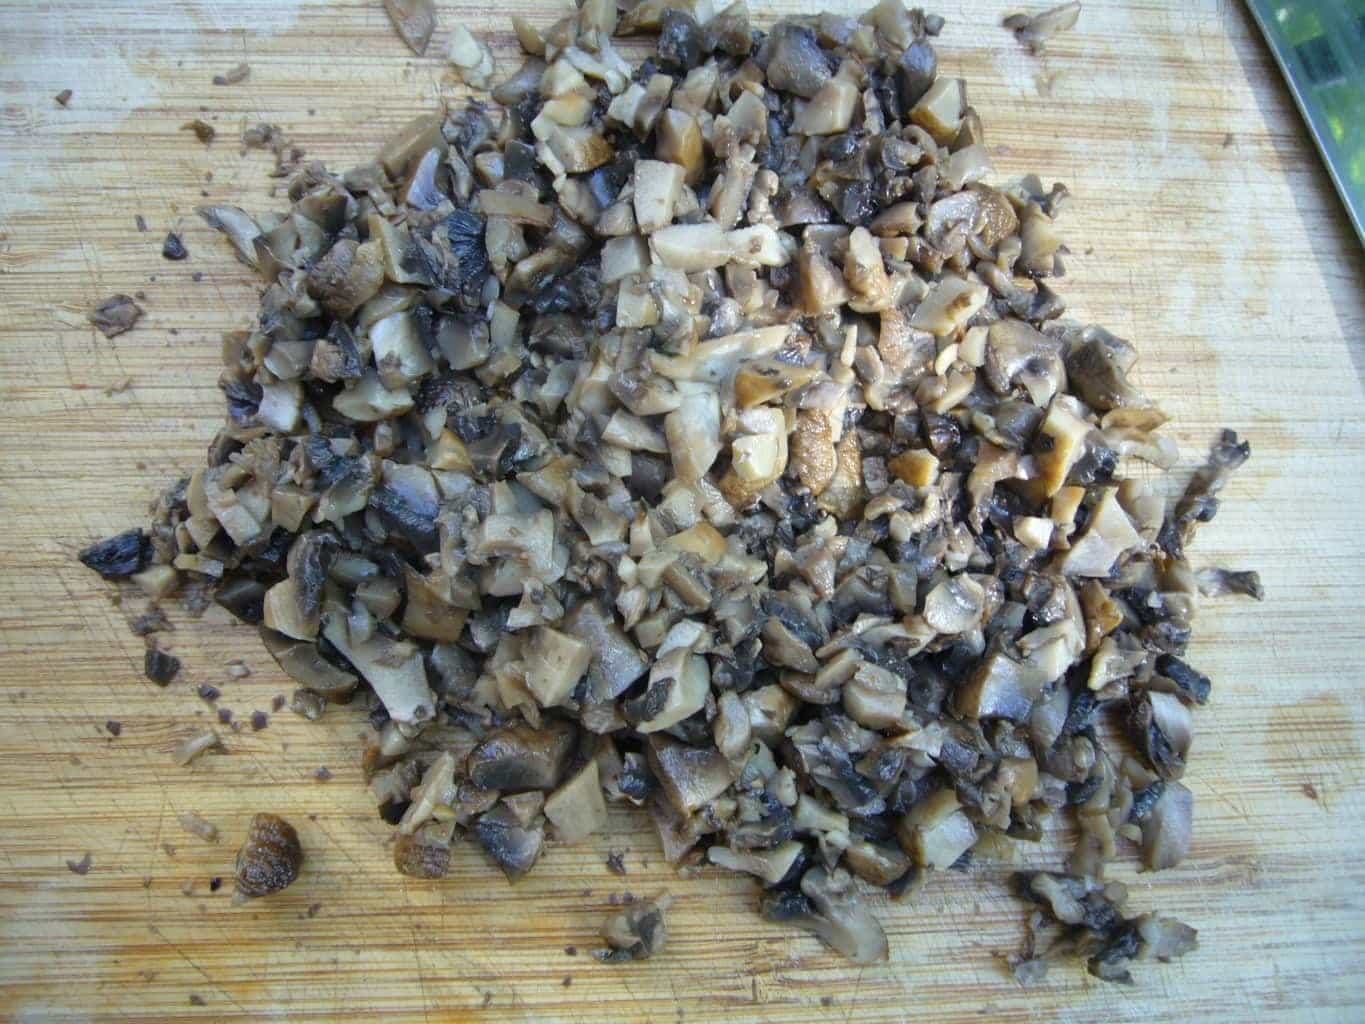 Roasted mushrooms finely minced.